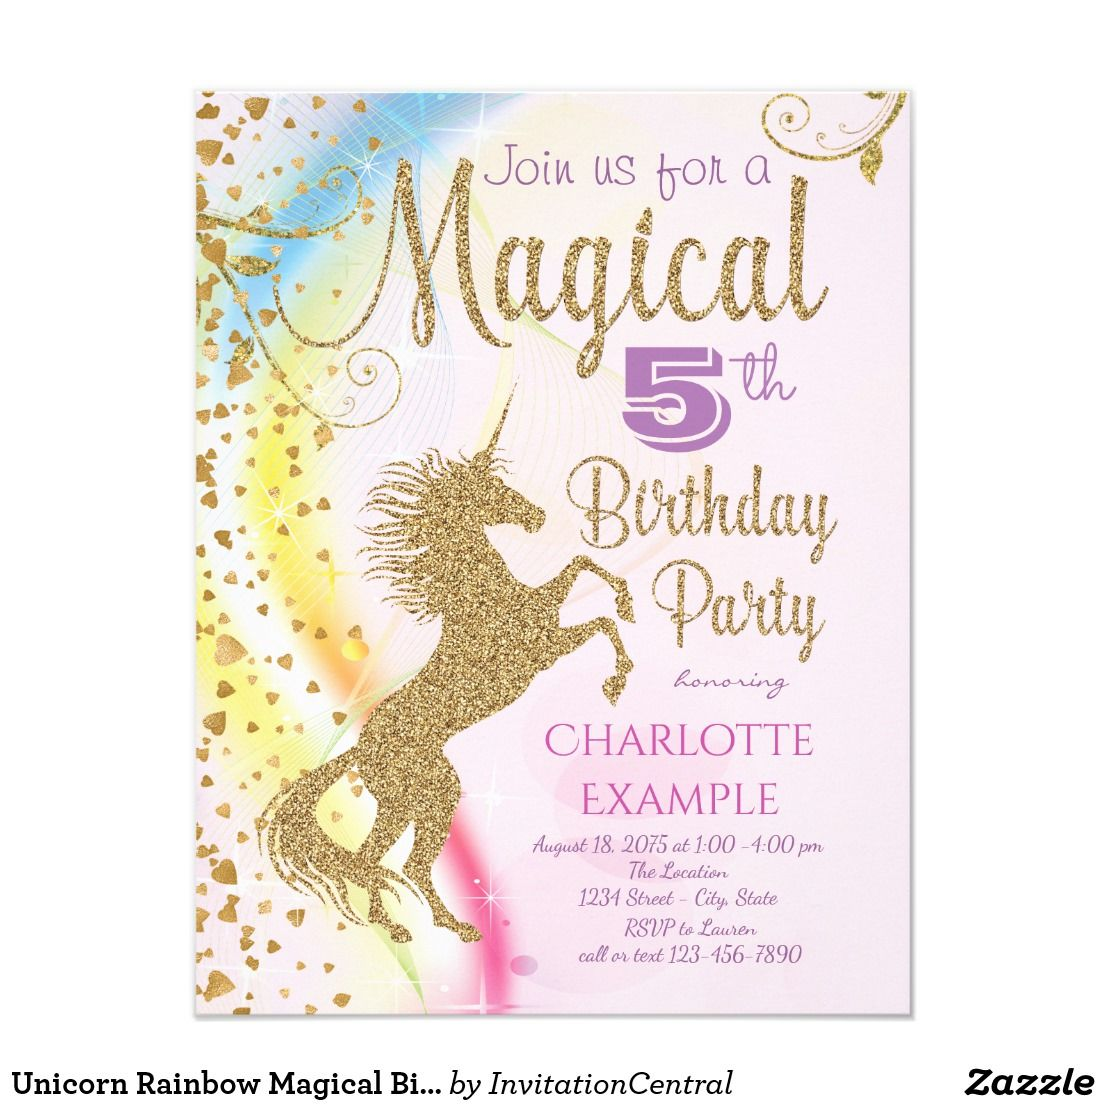 Unicorn Rainbow Magical Birthday Party Invitations | Party ...